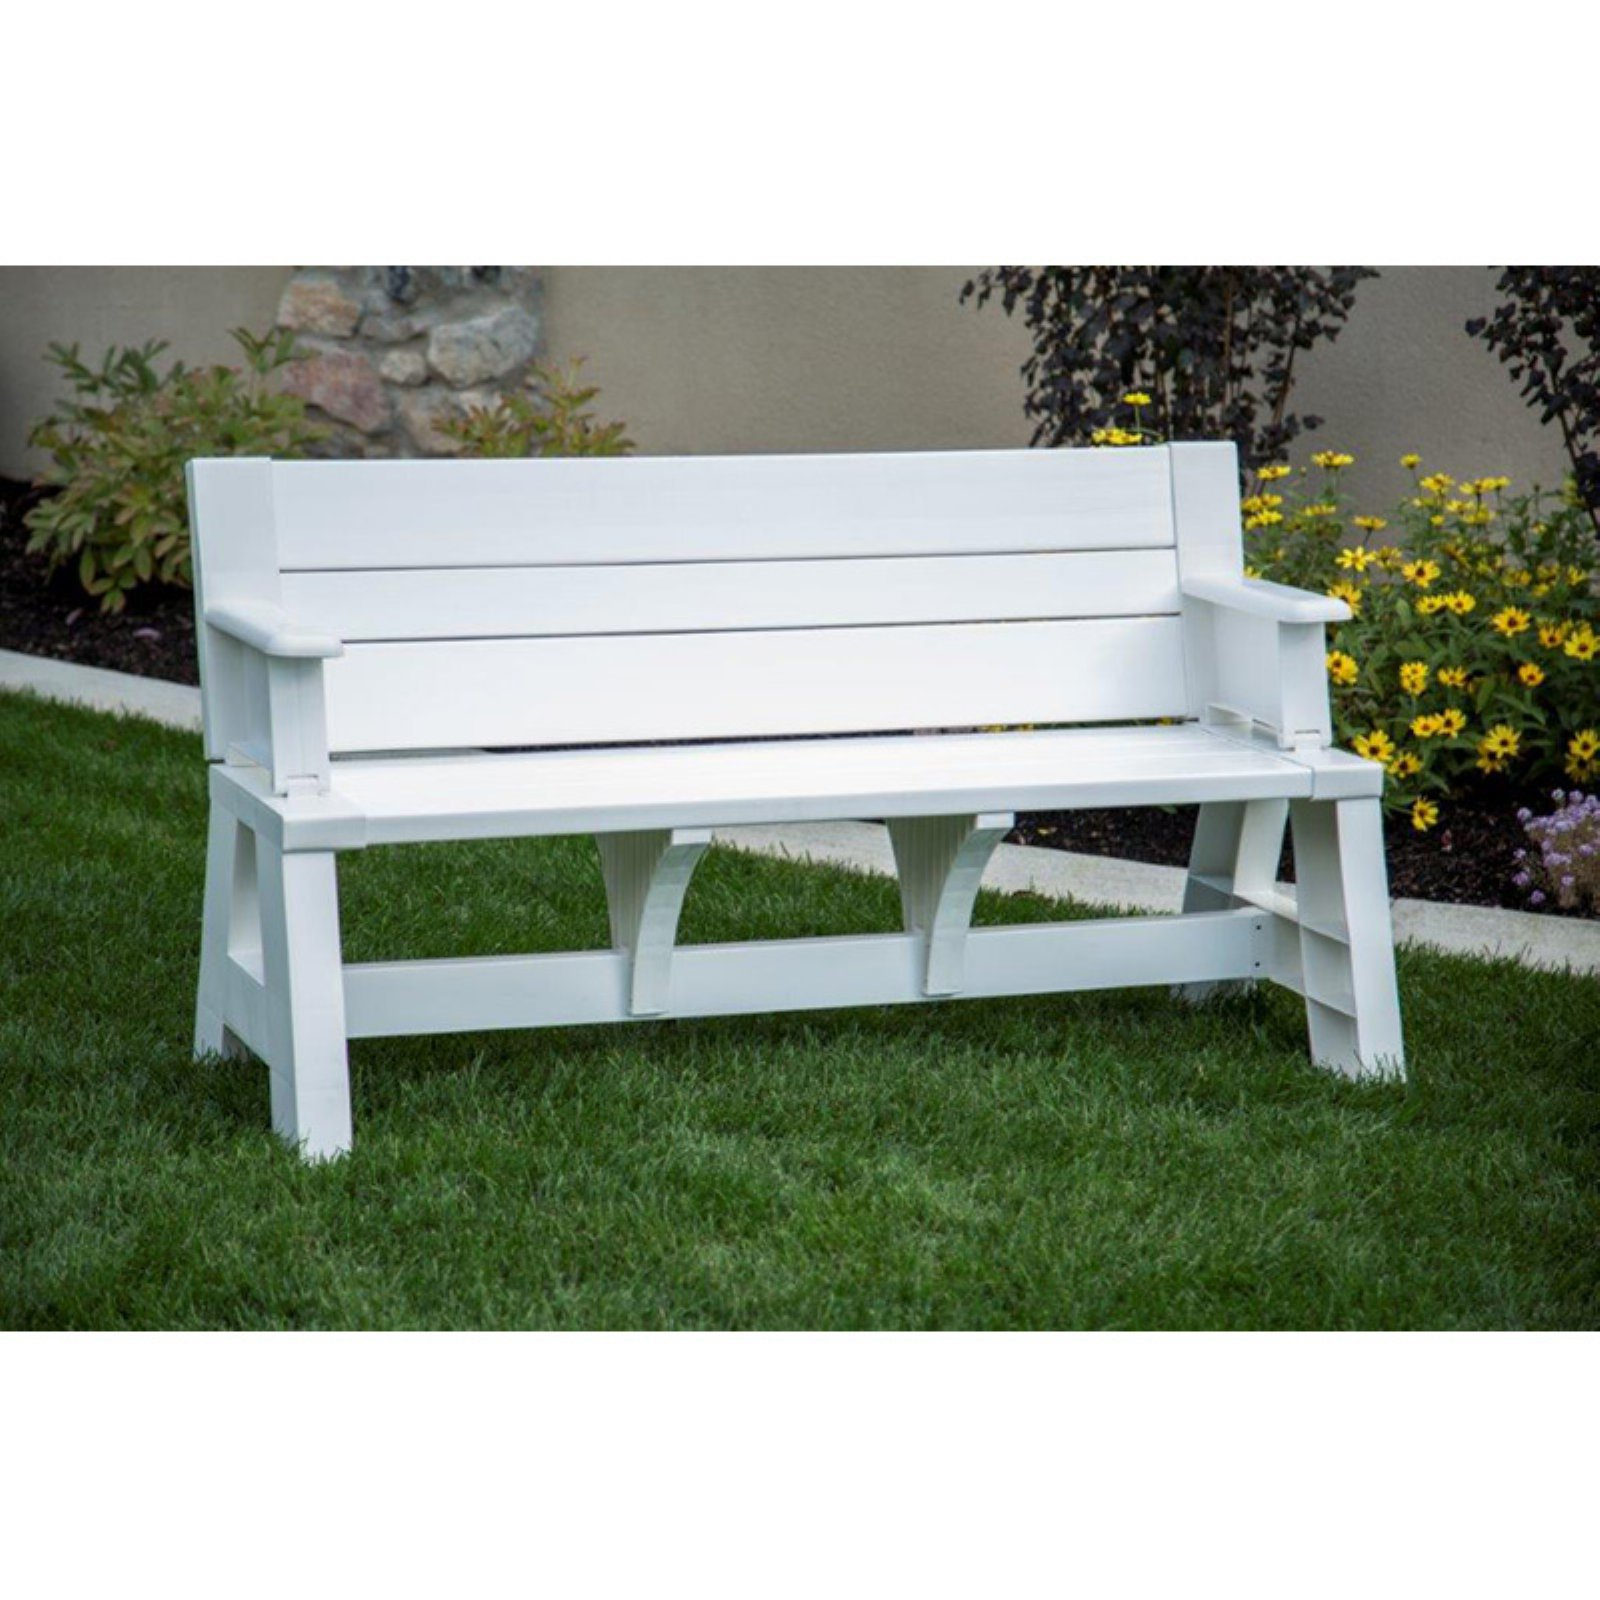 Premiere Products Convert A Bench